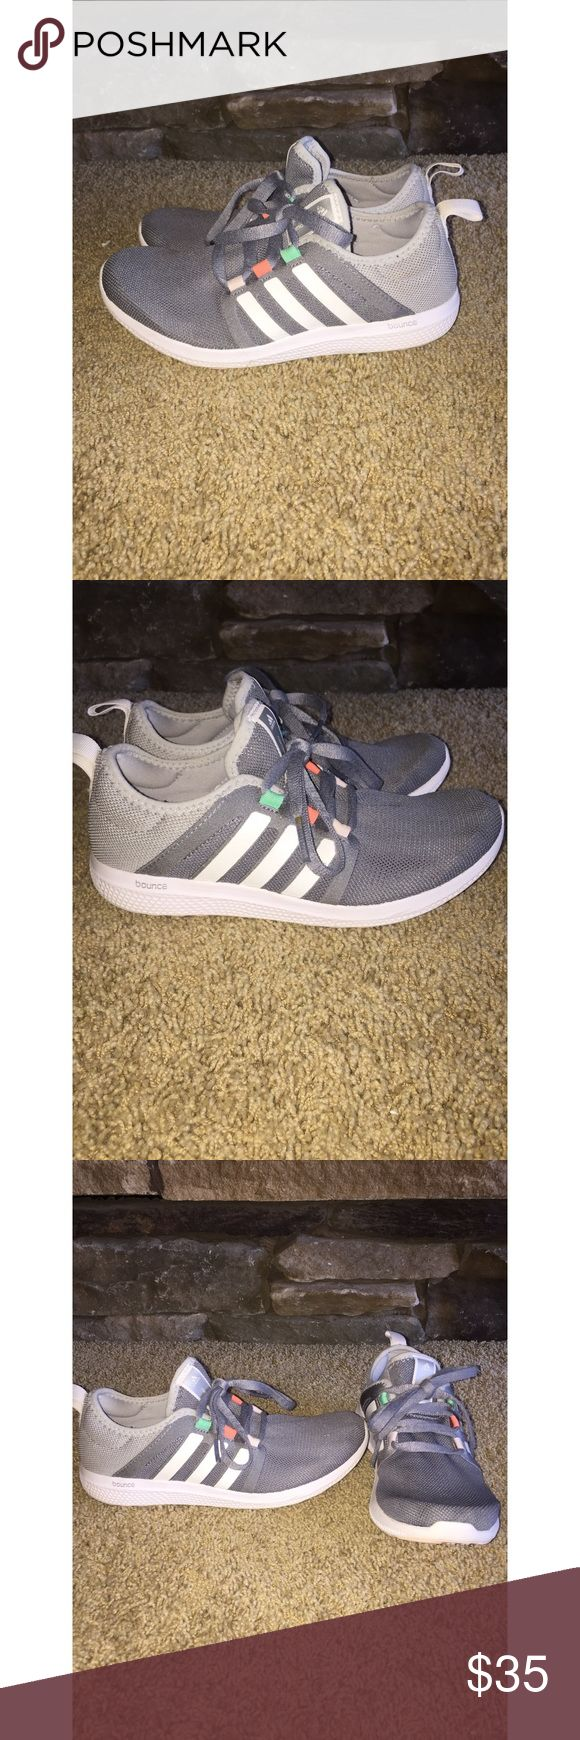 Adidas Bounce Used Adidas Bounce sneakers size 6! Gently worn sneakers showing minimal wear! Just washed in the washer to removal any dirt and they have no smell! Great shoes with lots of wear left in them! Shoes are light grey, dark grey, and white! adidas Shoes Athletic Shoes